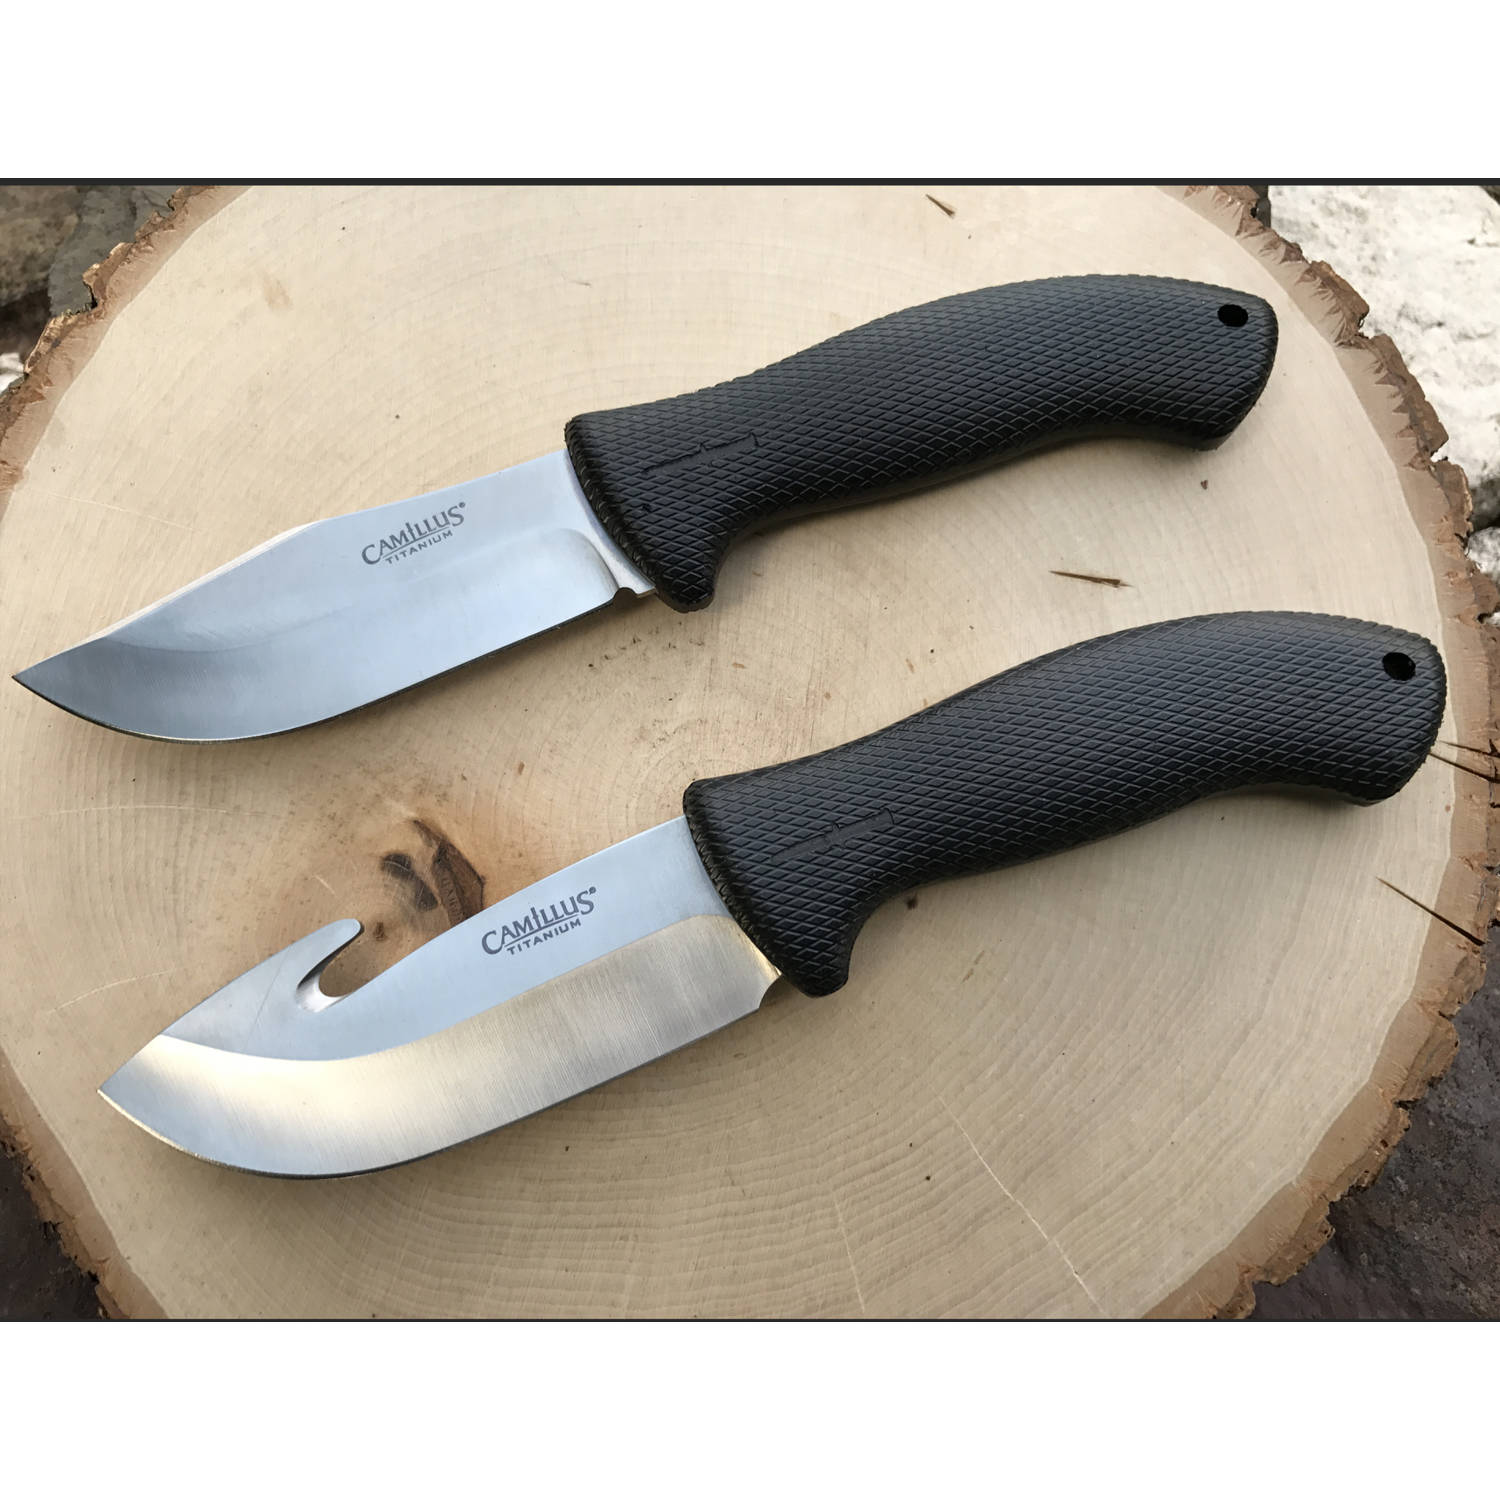 Camillus 2-Piece Game Combo Knife Set, #19350